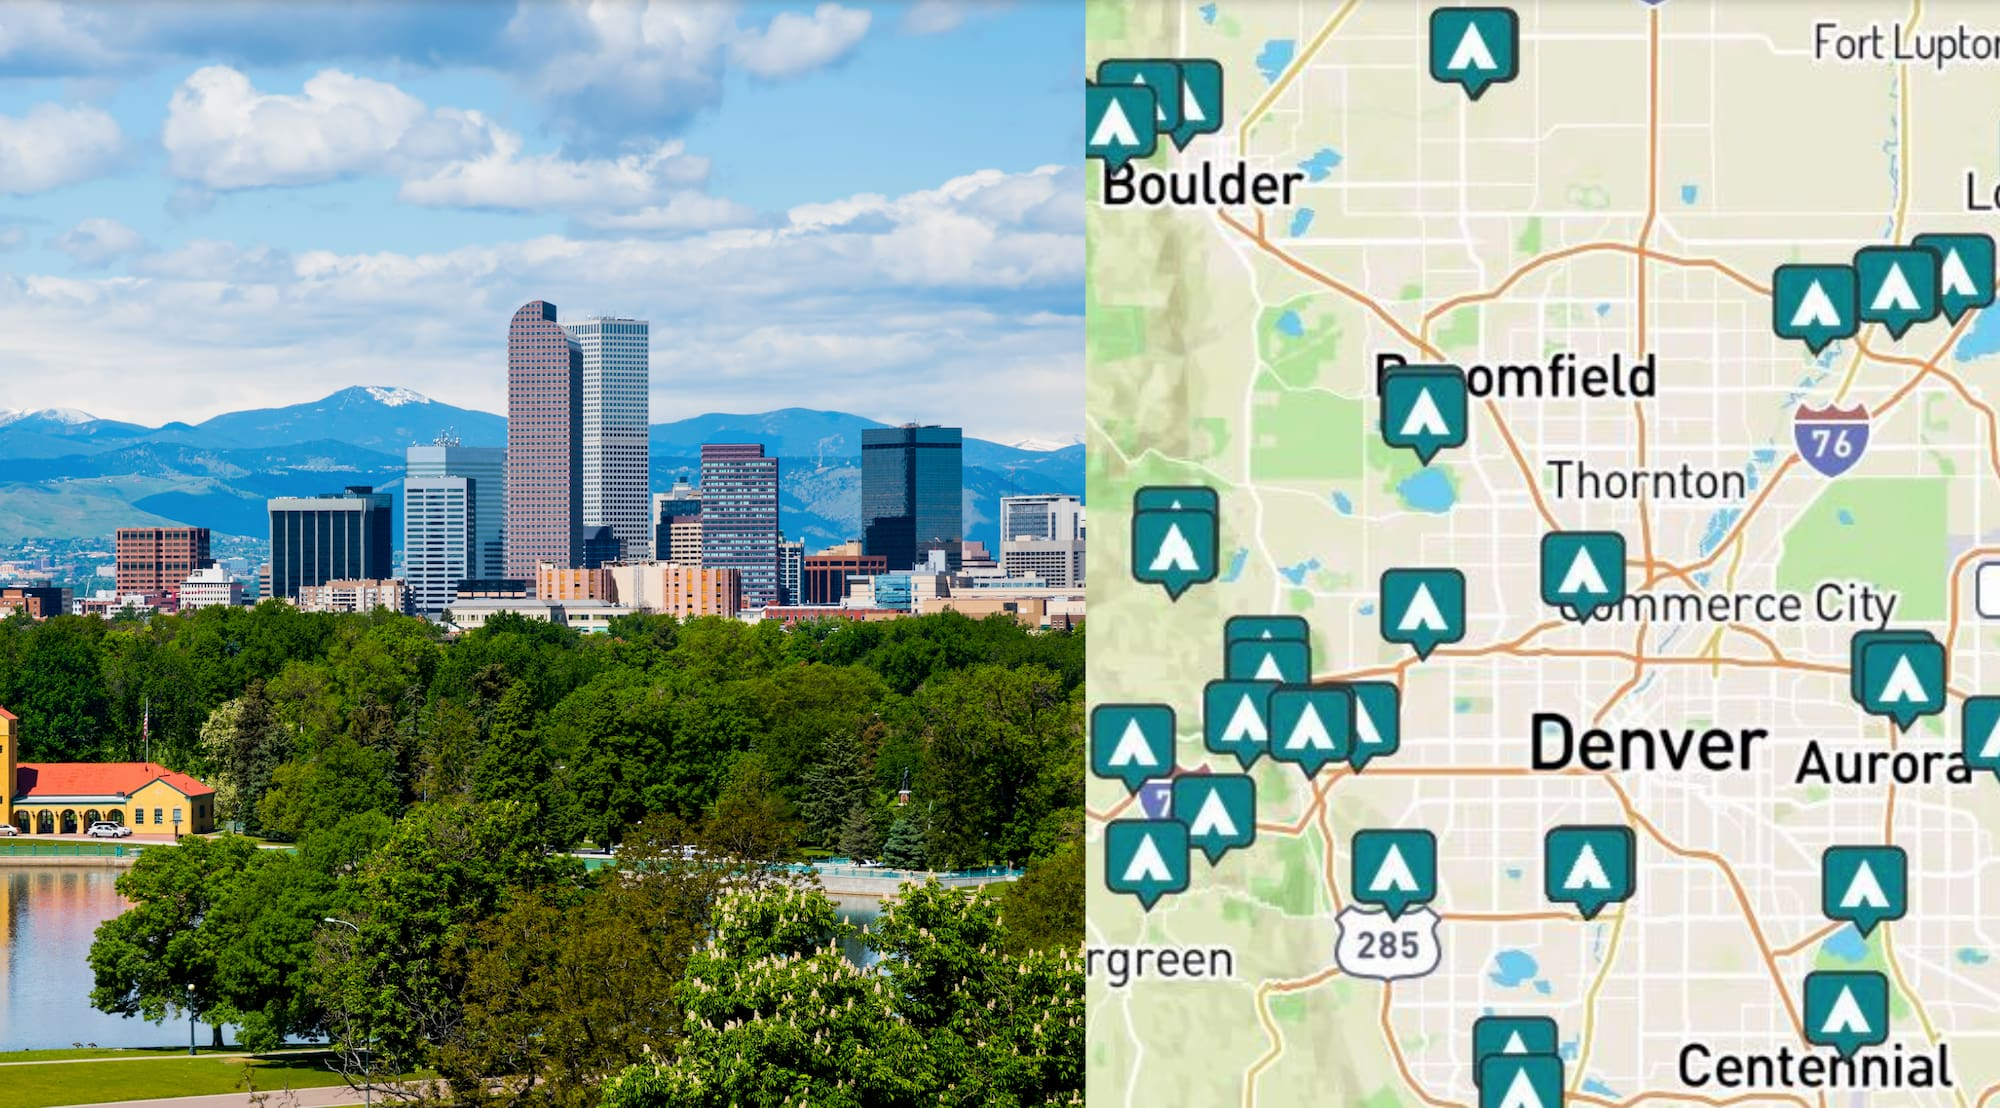 side-by-side images of Denver and a map of campgrounds near Denver